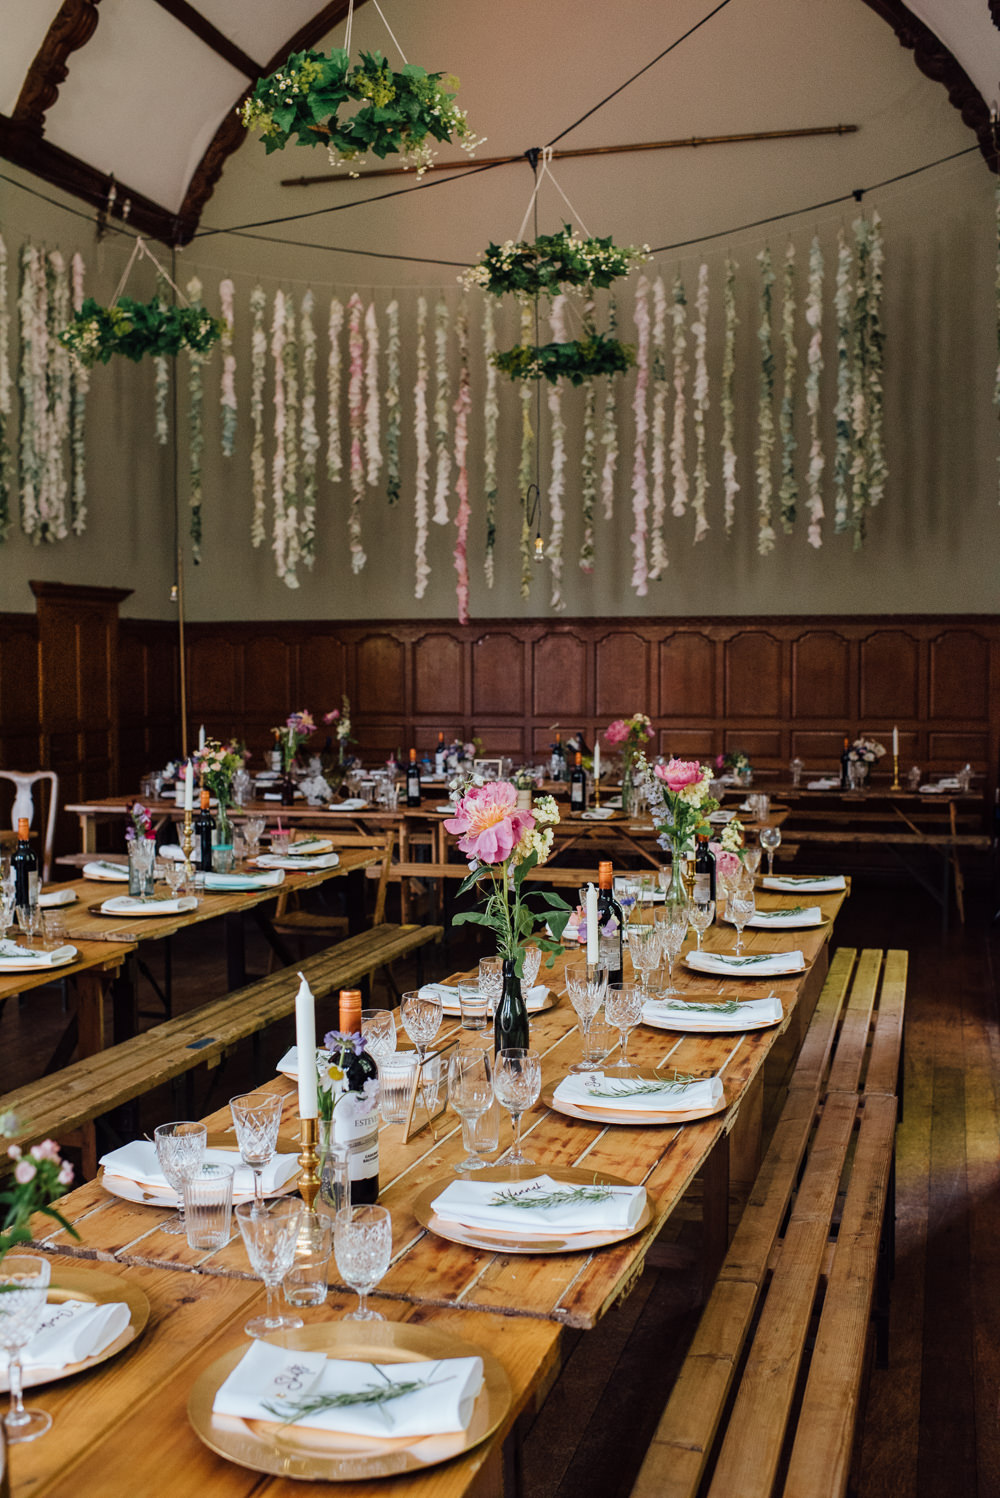 Decor Reception Venue Paper Coffee Filter Backdrop Garland Decorations Long Tables Barley Wood House Wedding The Shannons Photography